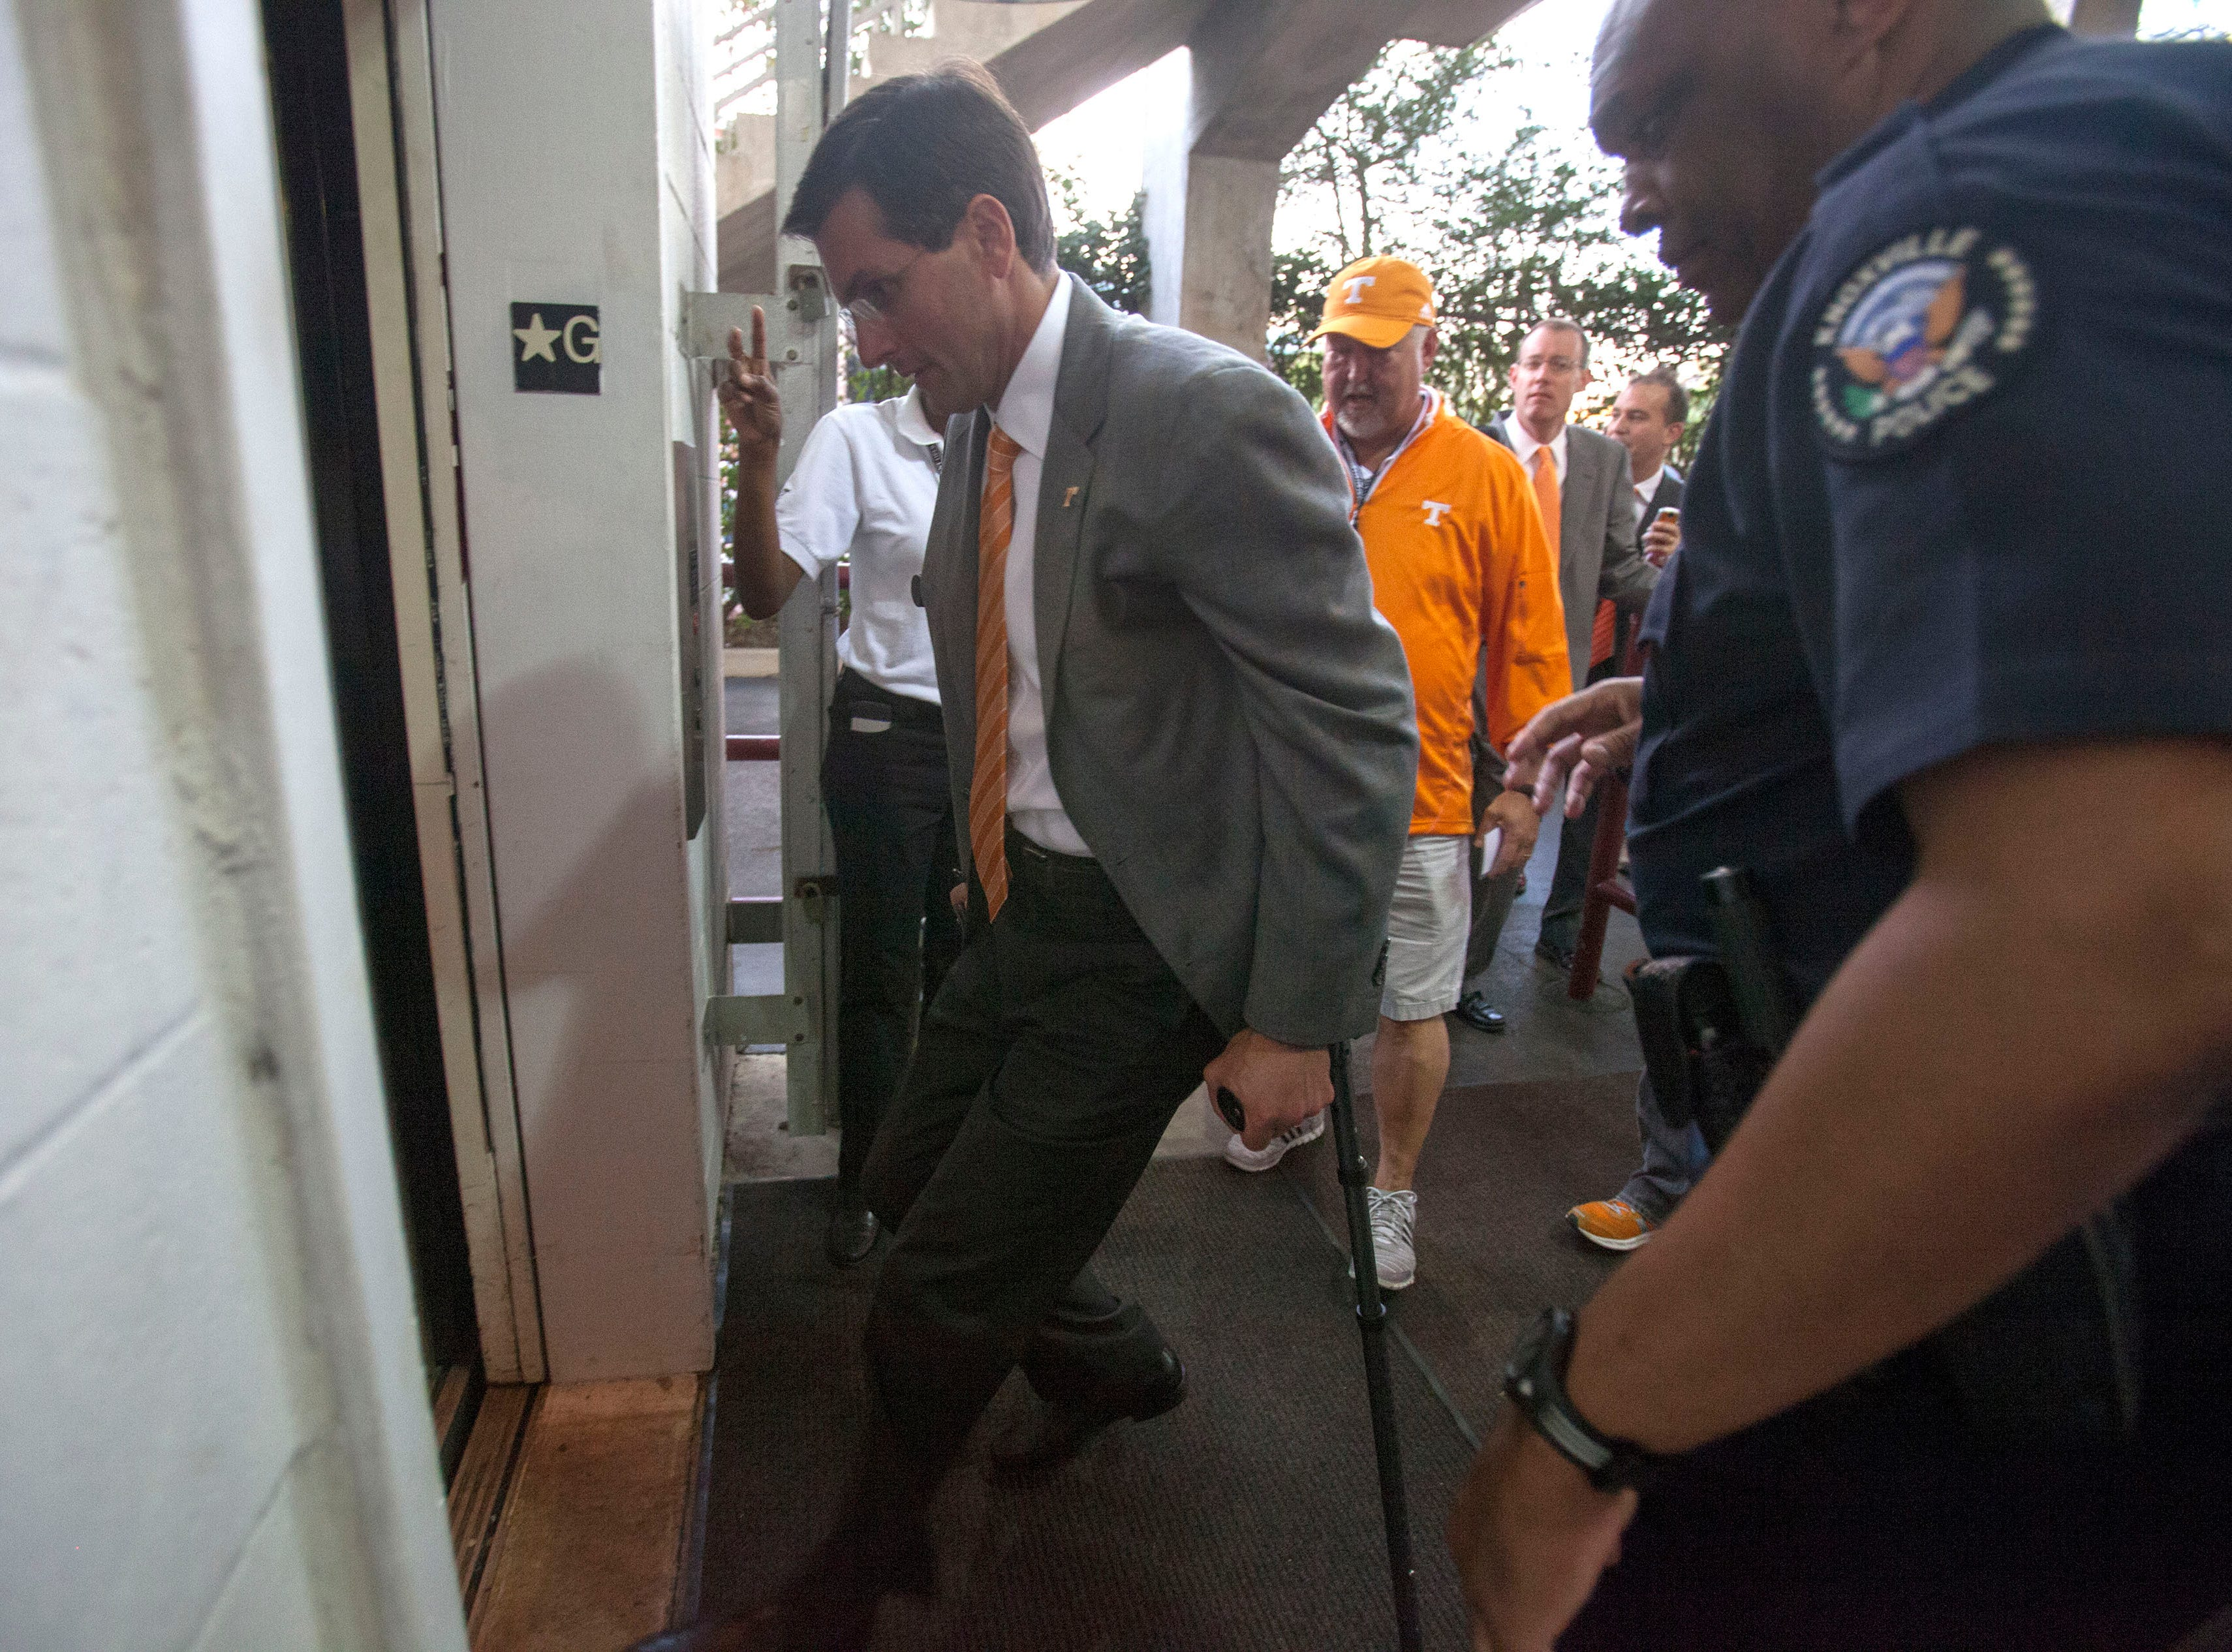 Tennessee head coach Derek Dooley boards an elevator to the press box level in Davis Wade Stadium before the Volunteers matchup against the Mississippi State Bulldogs  in Starkville, Miss., Saturday, Oct. 13, 2012. Dooley underwent hip surgery earlier this week and will be coaching the game from the press box.